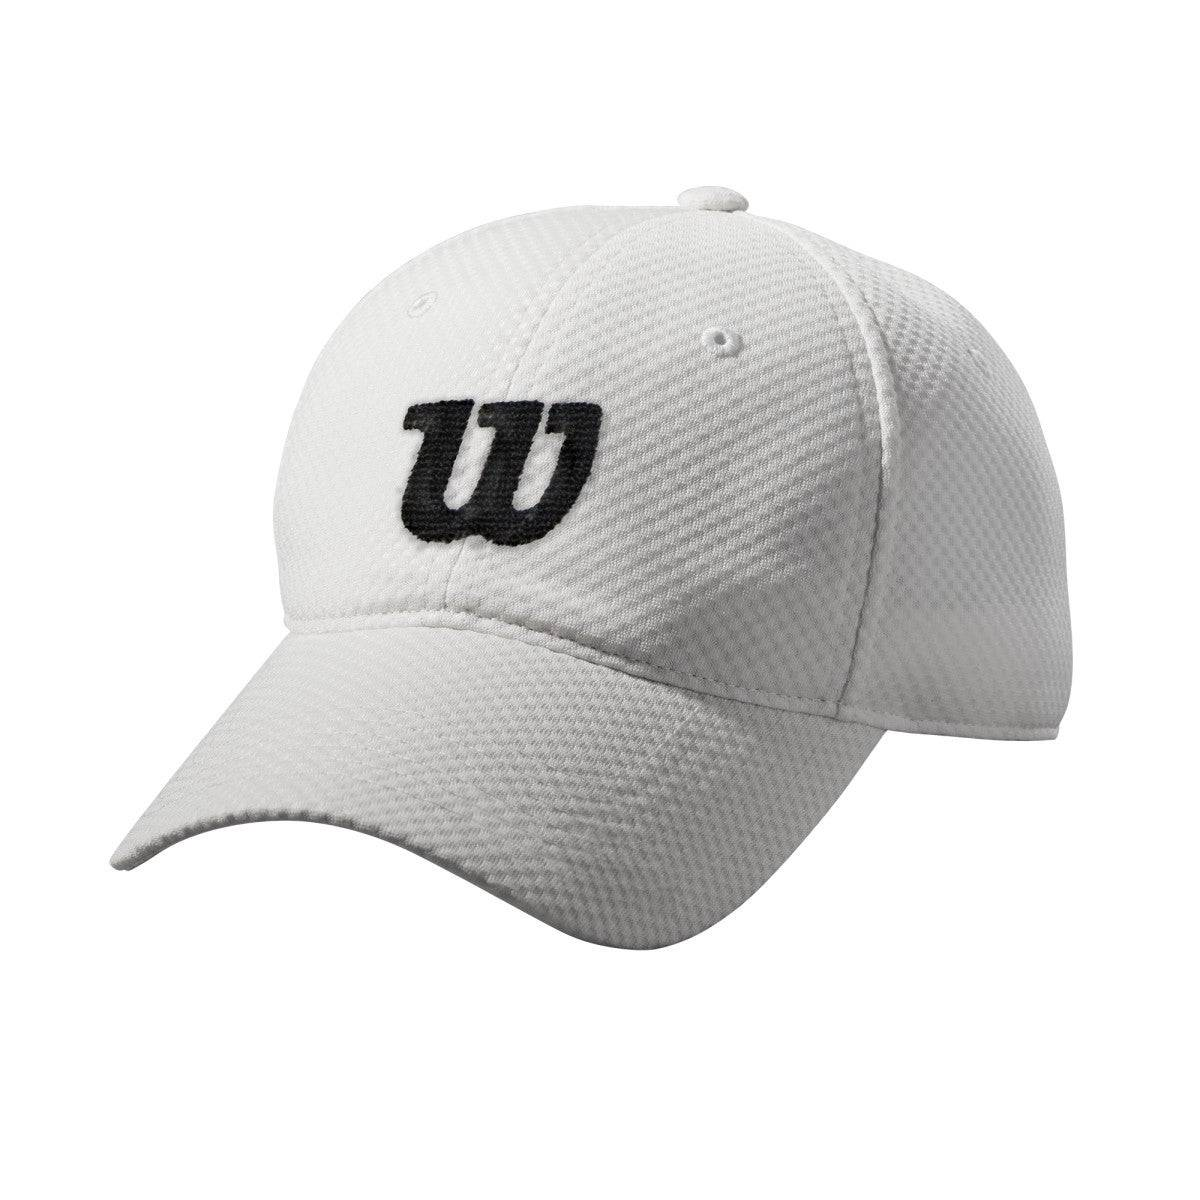 Wilson Summer Cap II in White - Size: One Size Fits Most  - Unisex - White - Size: One Size Fits Most